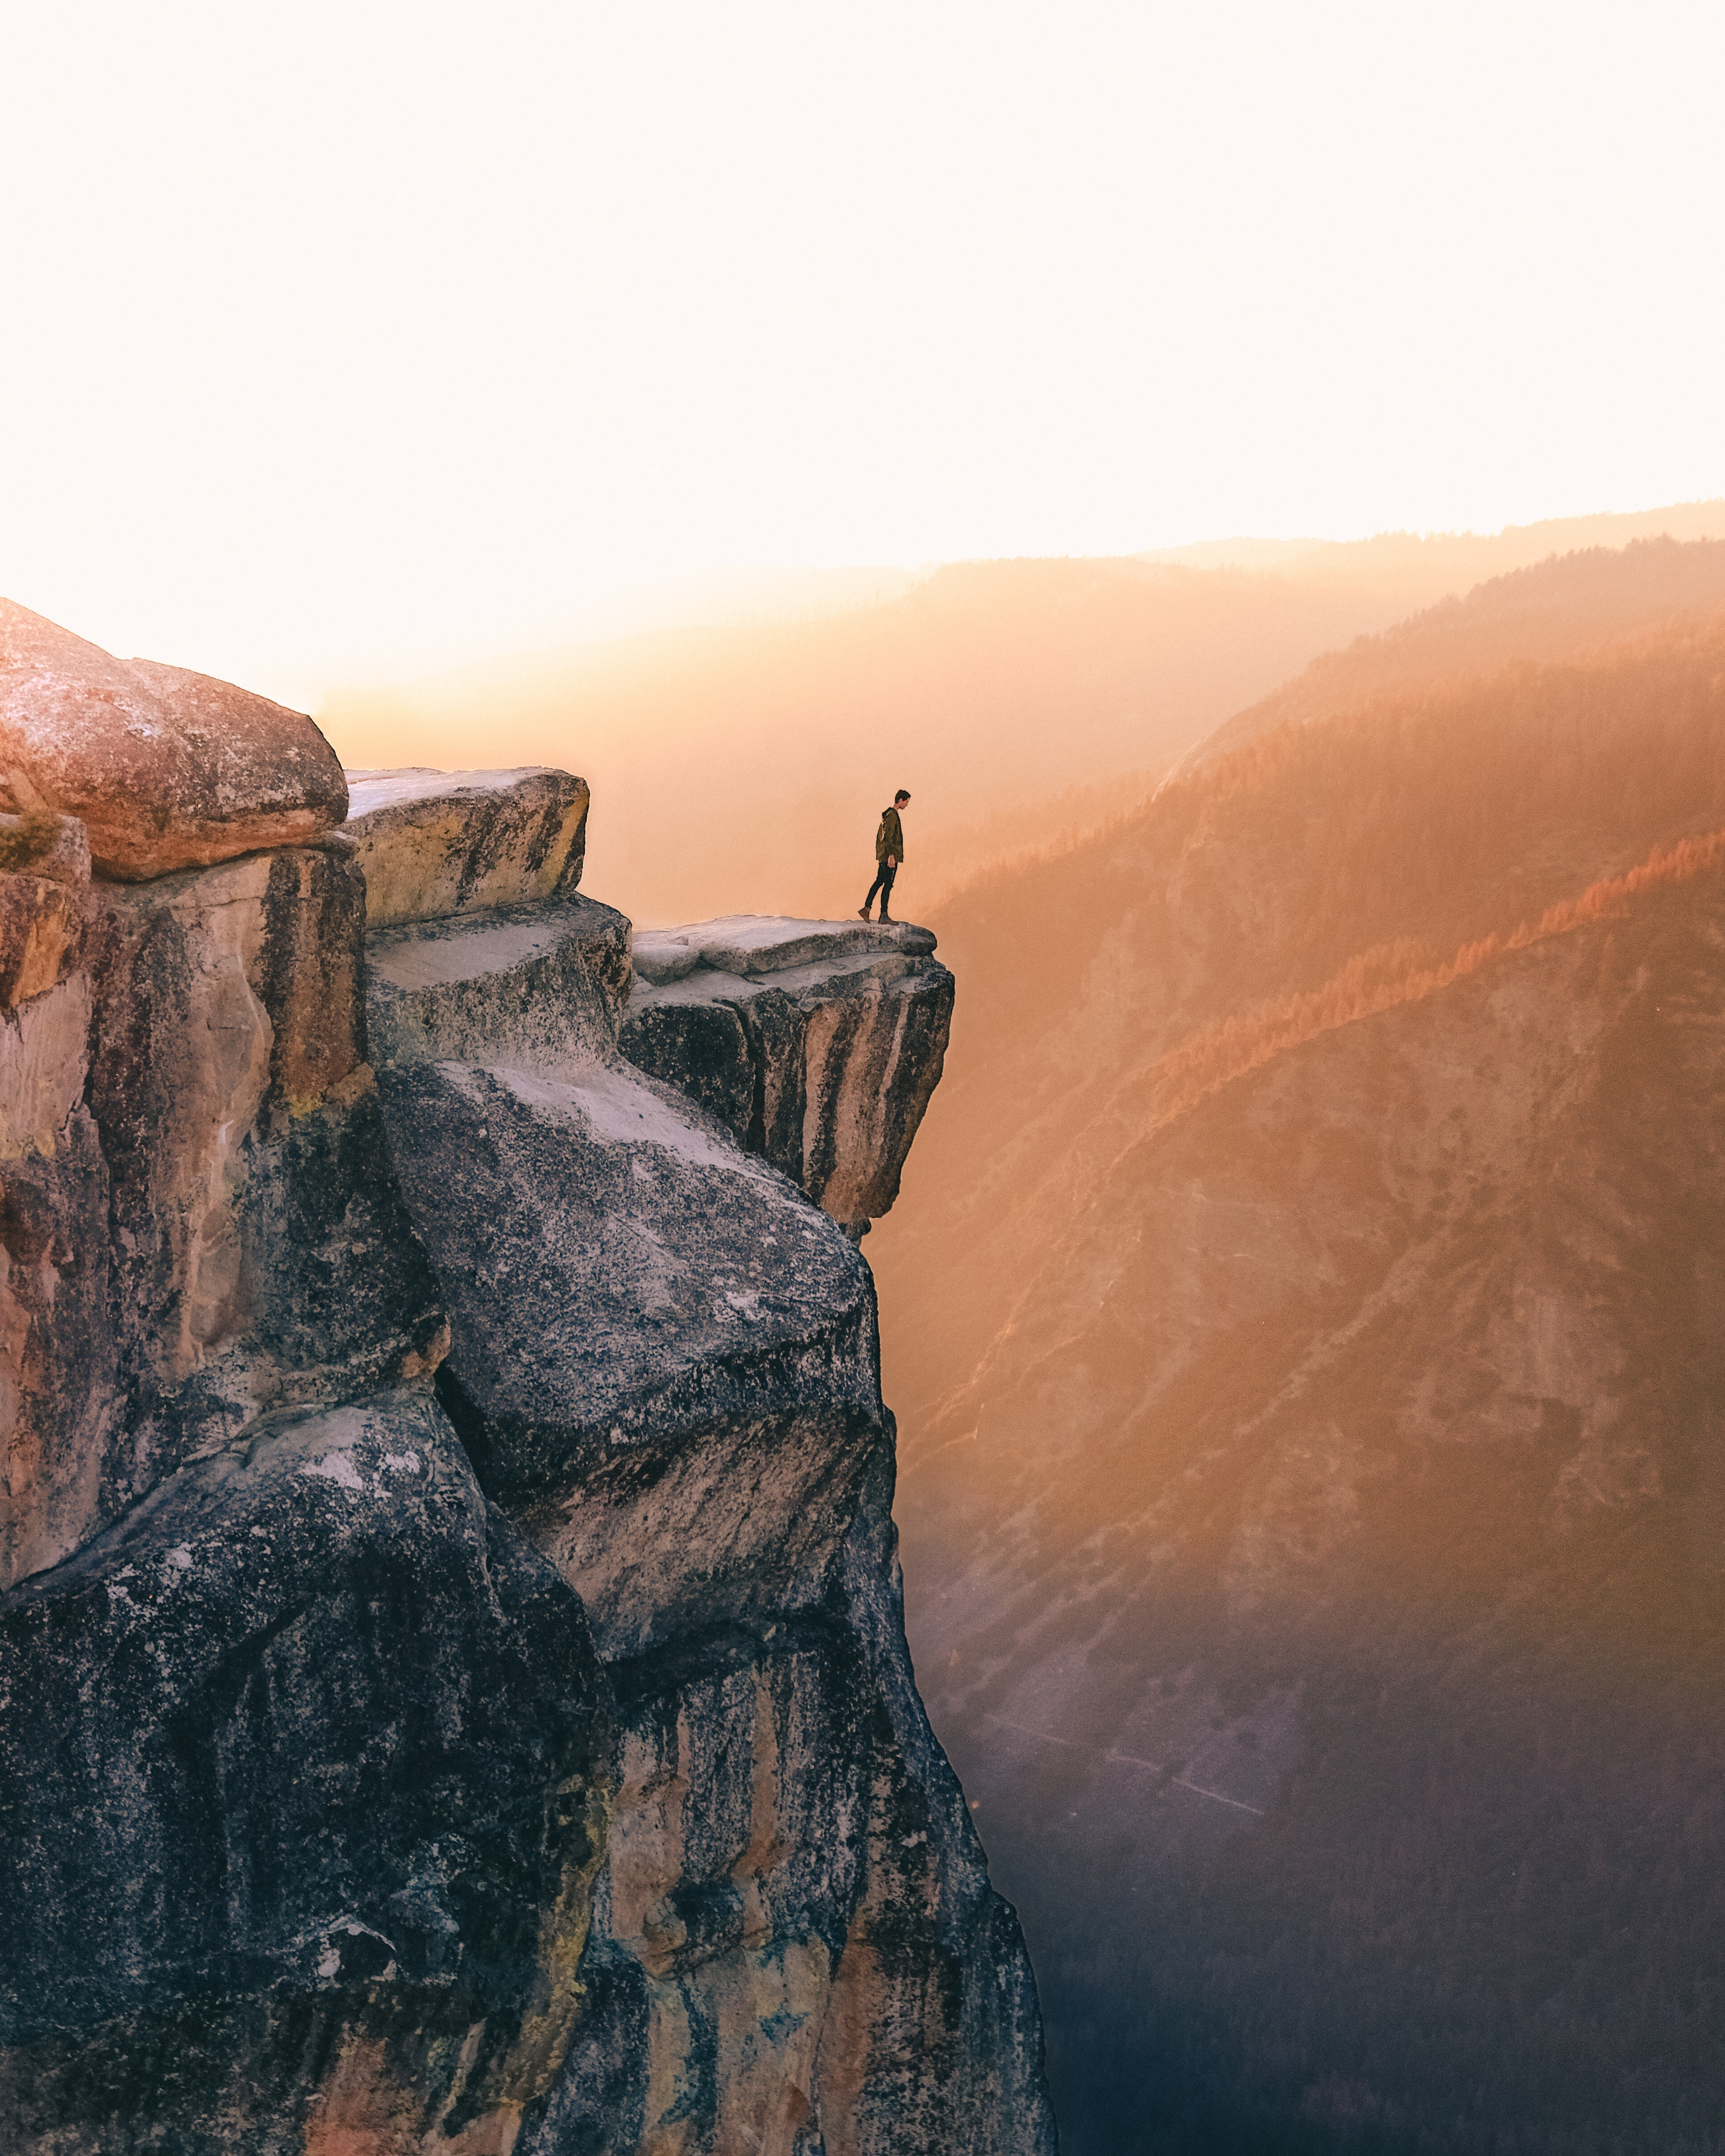 Person standing on the edge of a cliff